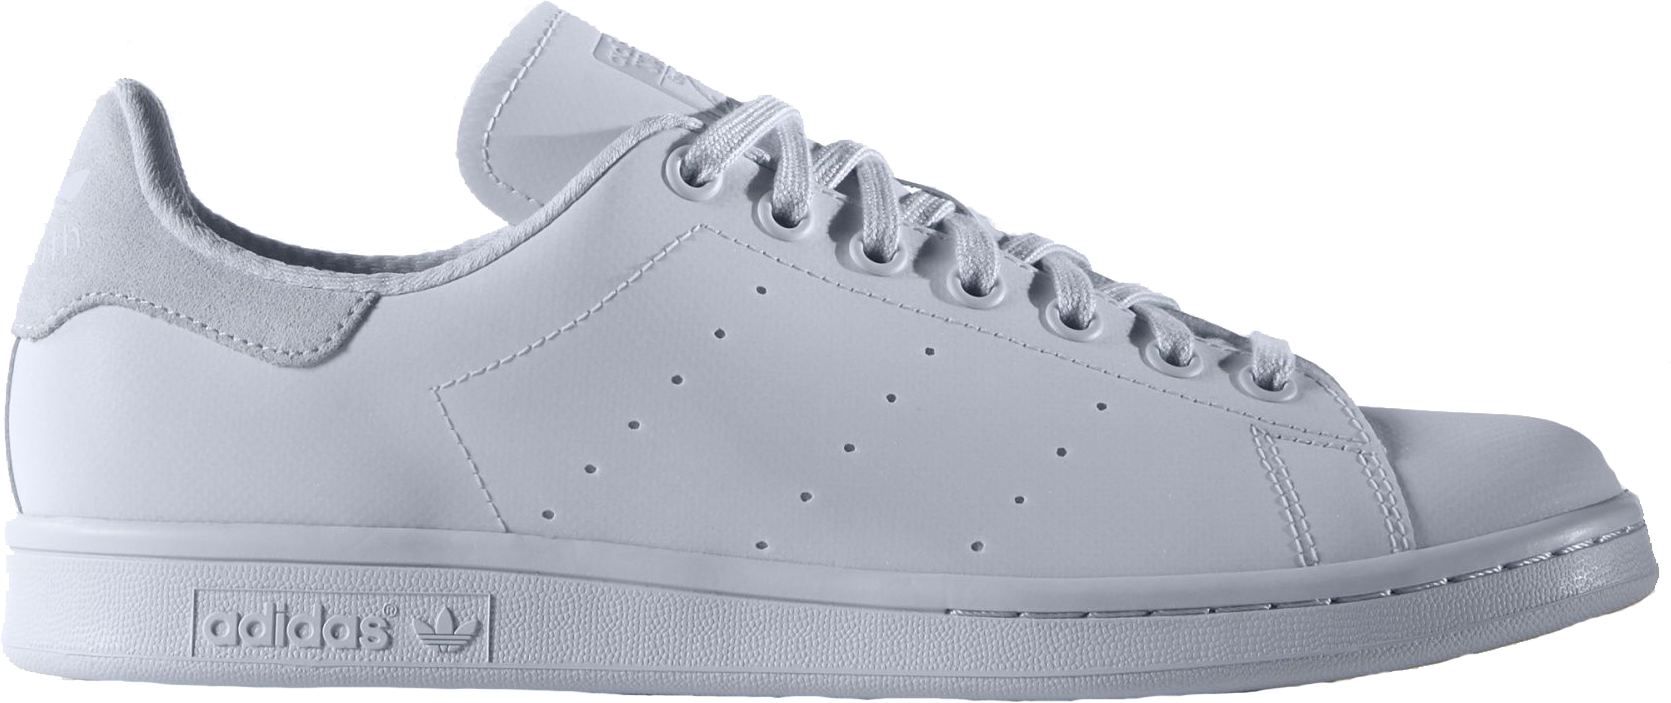 adidas Stan Smith Halo Blue Reflective